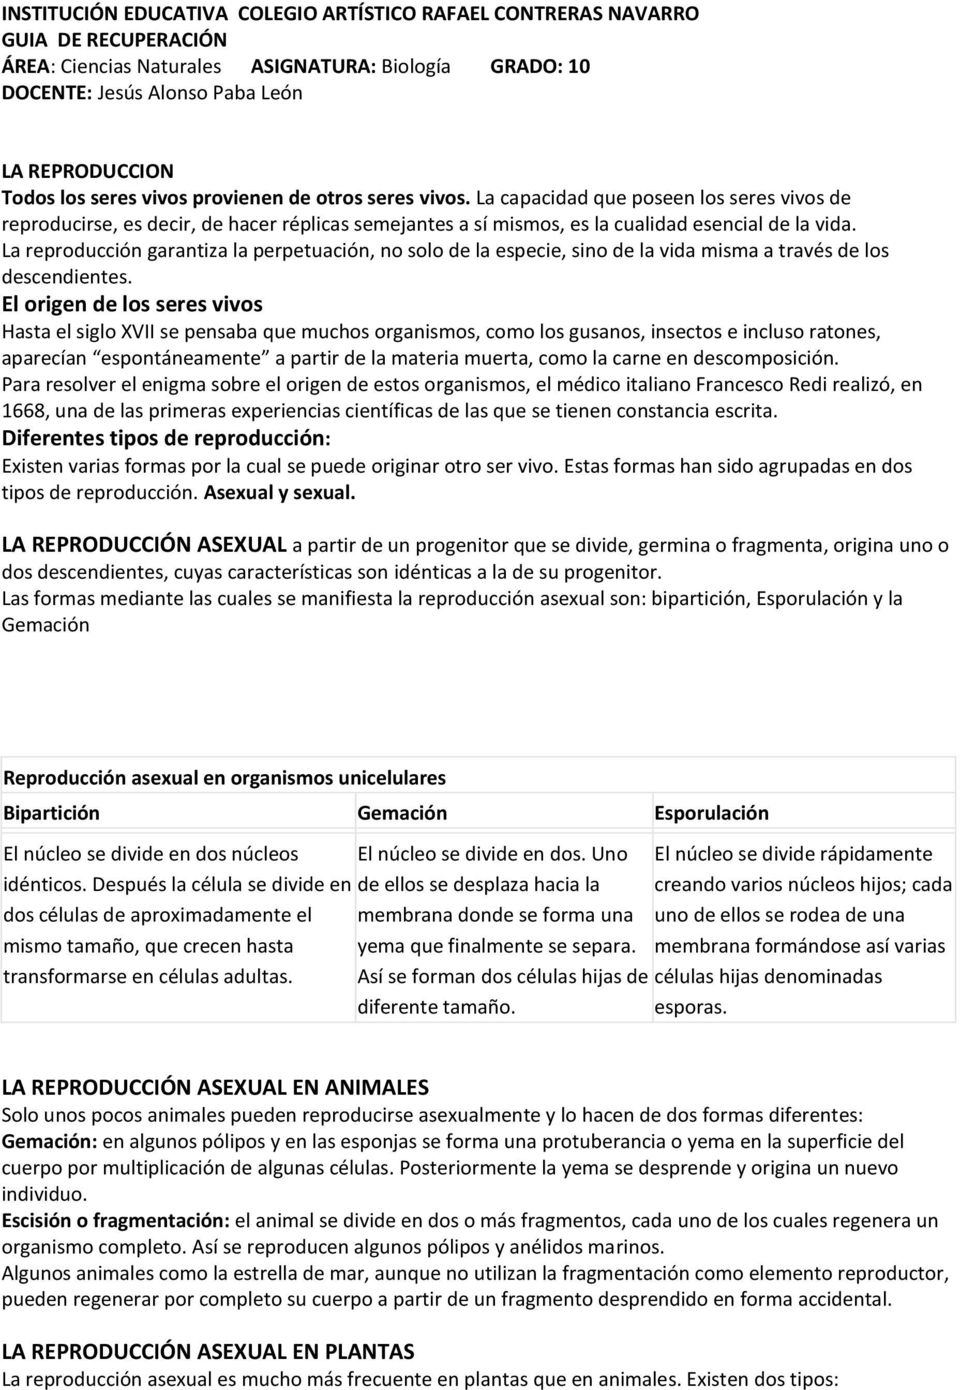 Reproduccion asexual en plantas pdf to jpg